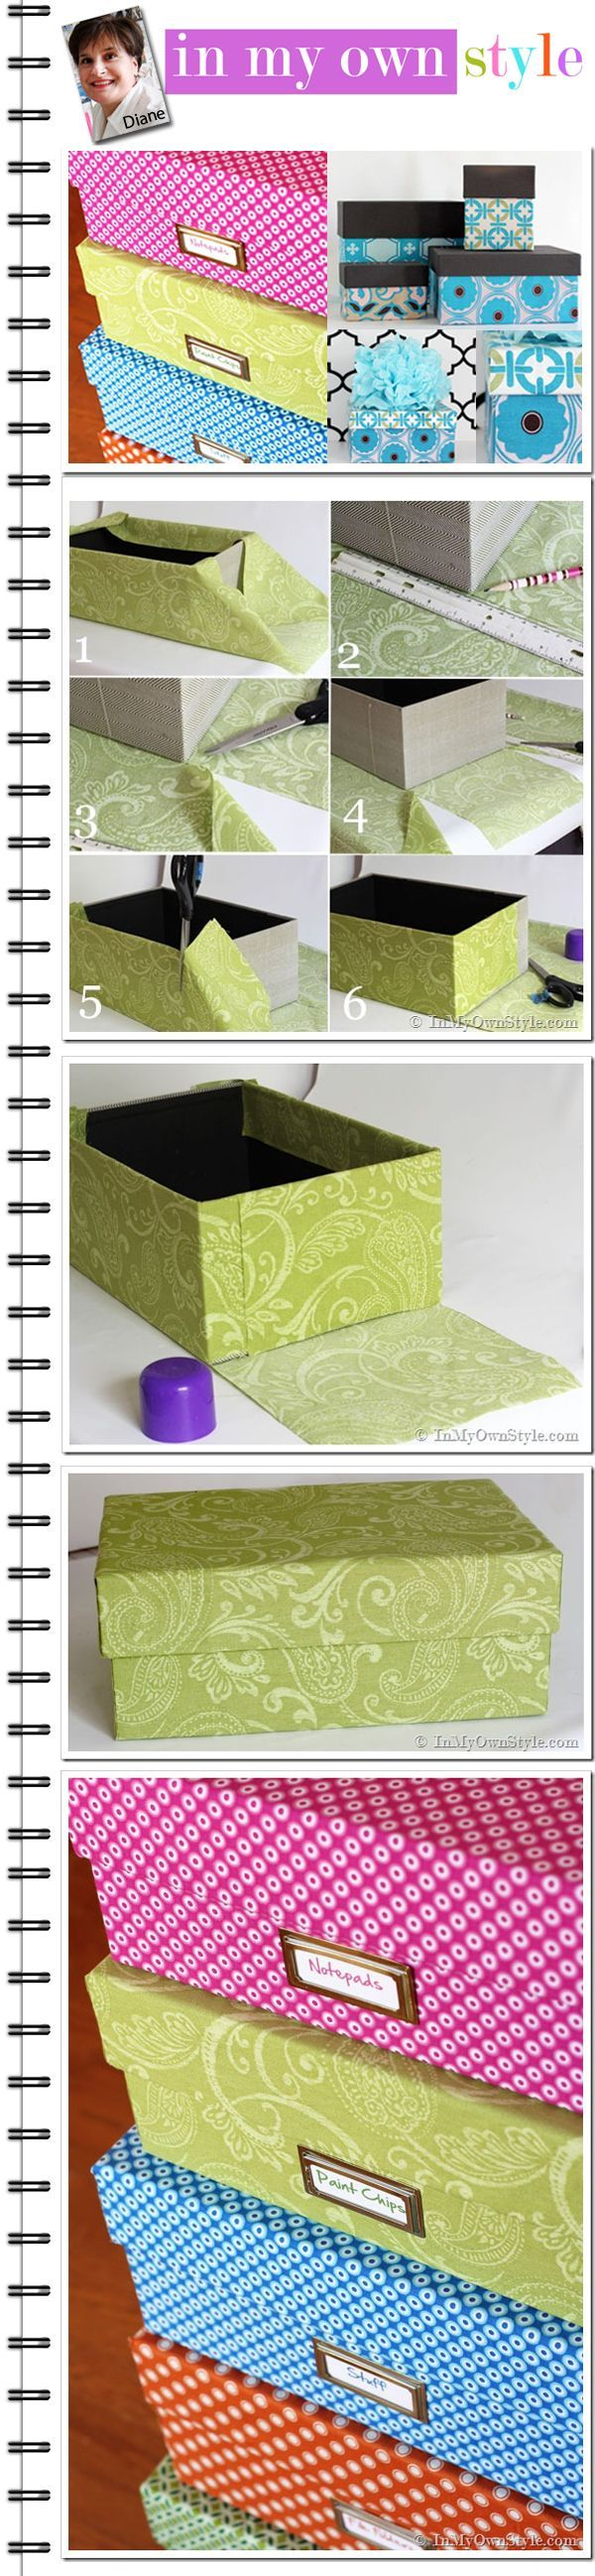 One Yard Décor: Fabric Covered Boxes... Could Also Use Shoe Boxes With